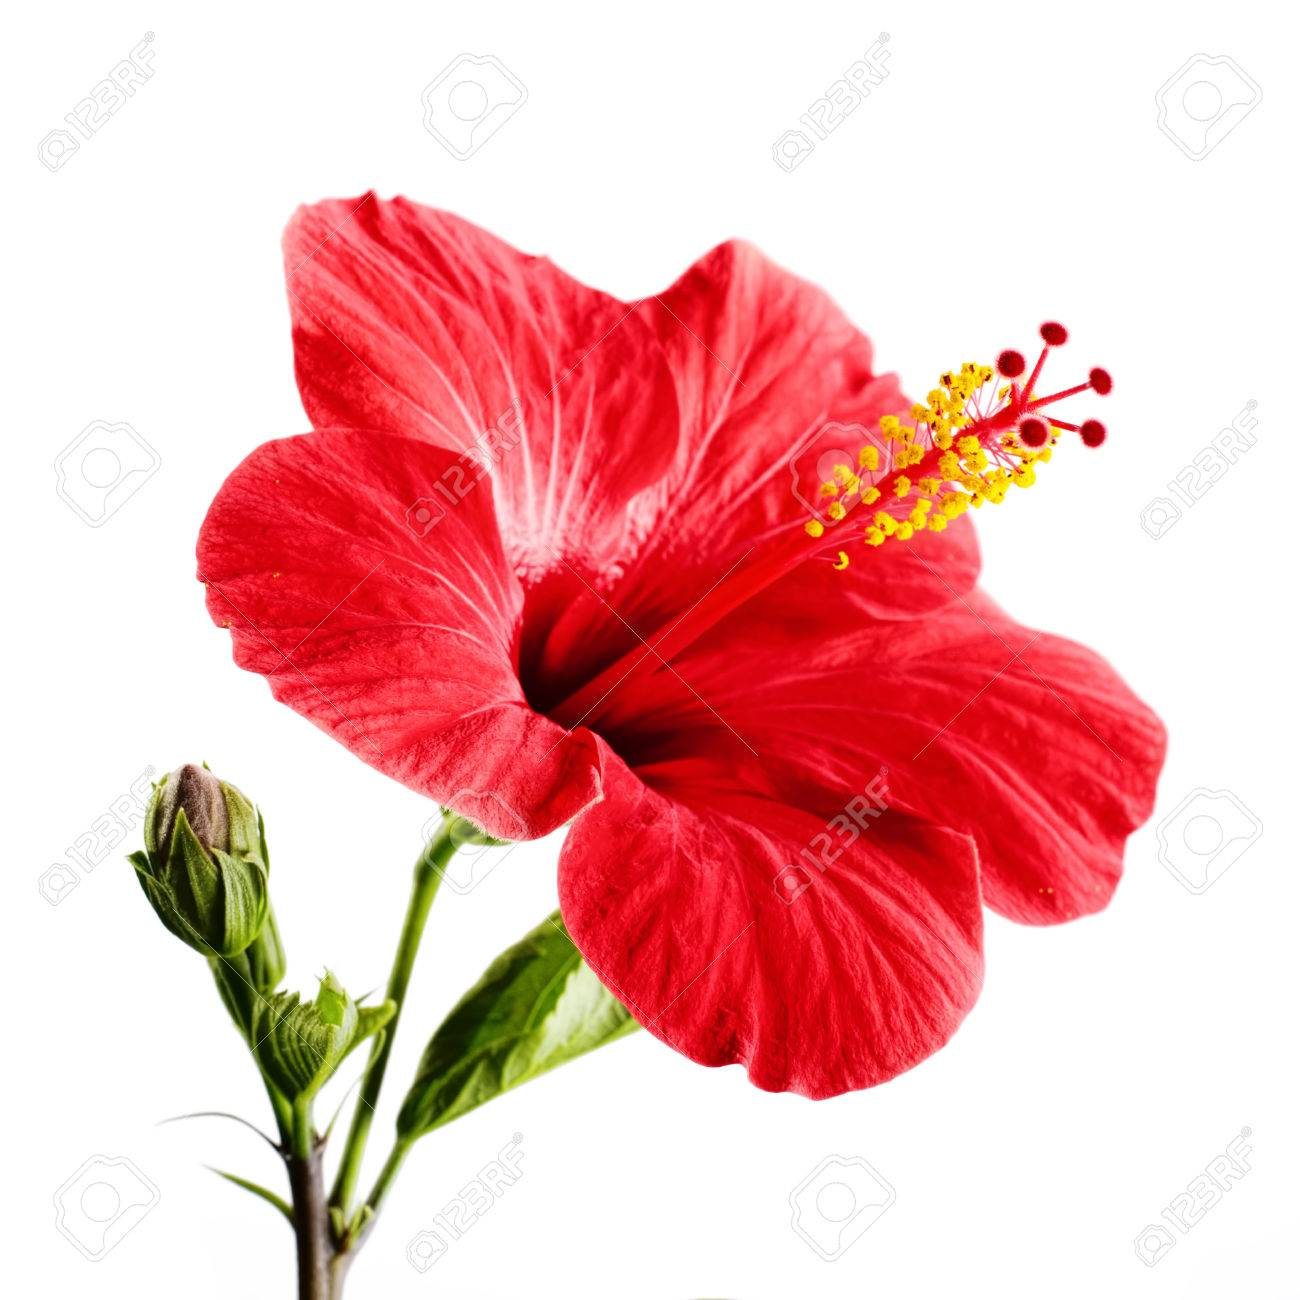 fbcc51fdad1d Hibiscus red flower on a white background isolated Stock Photo - 34450832